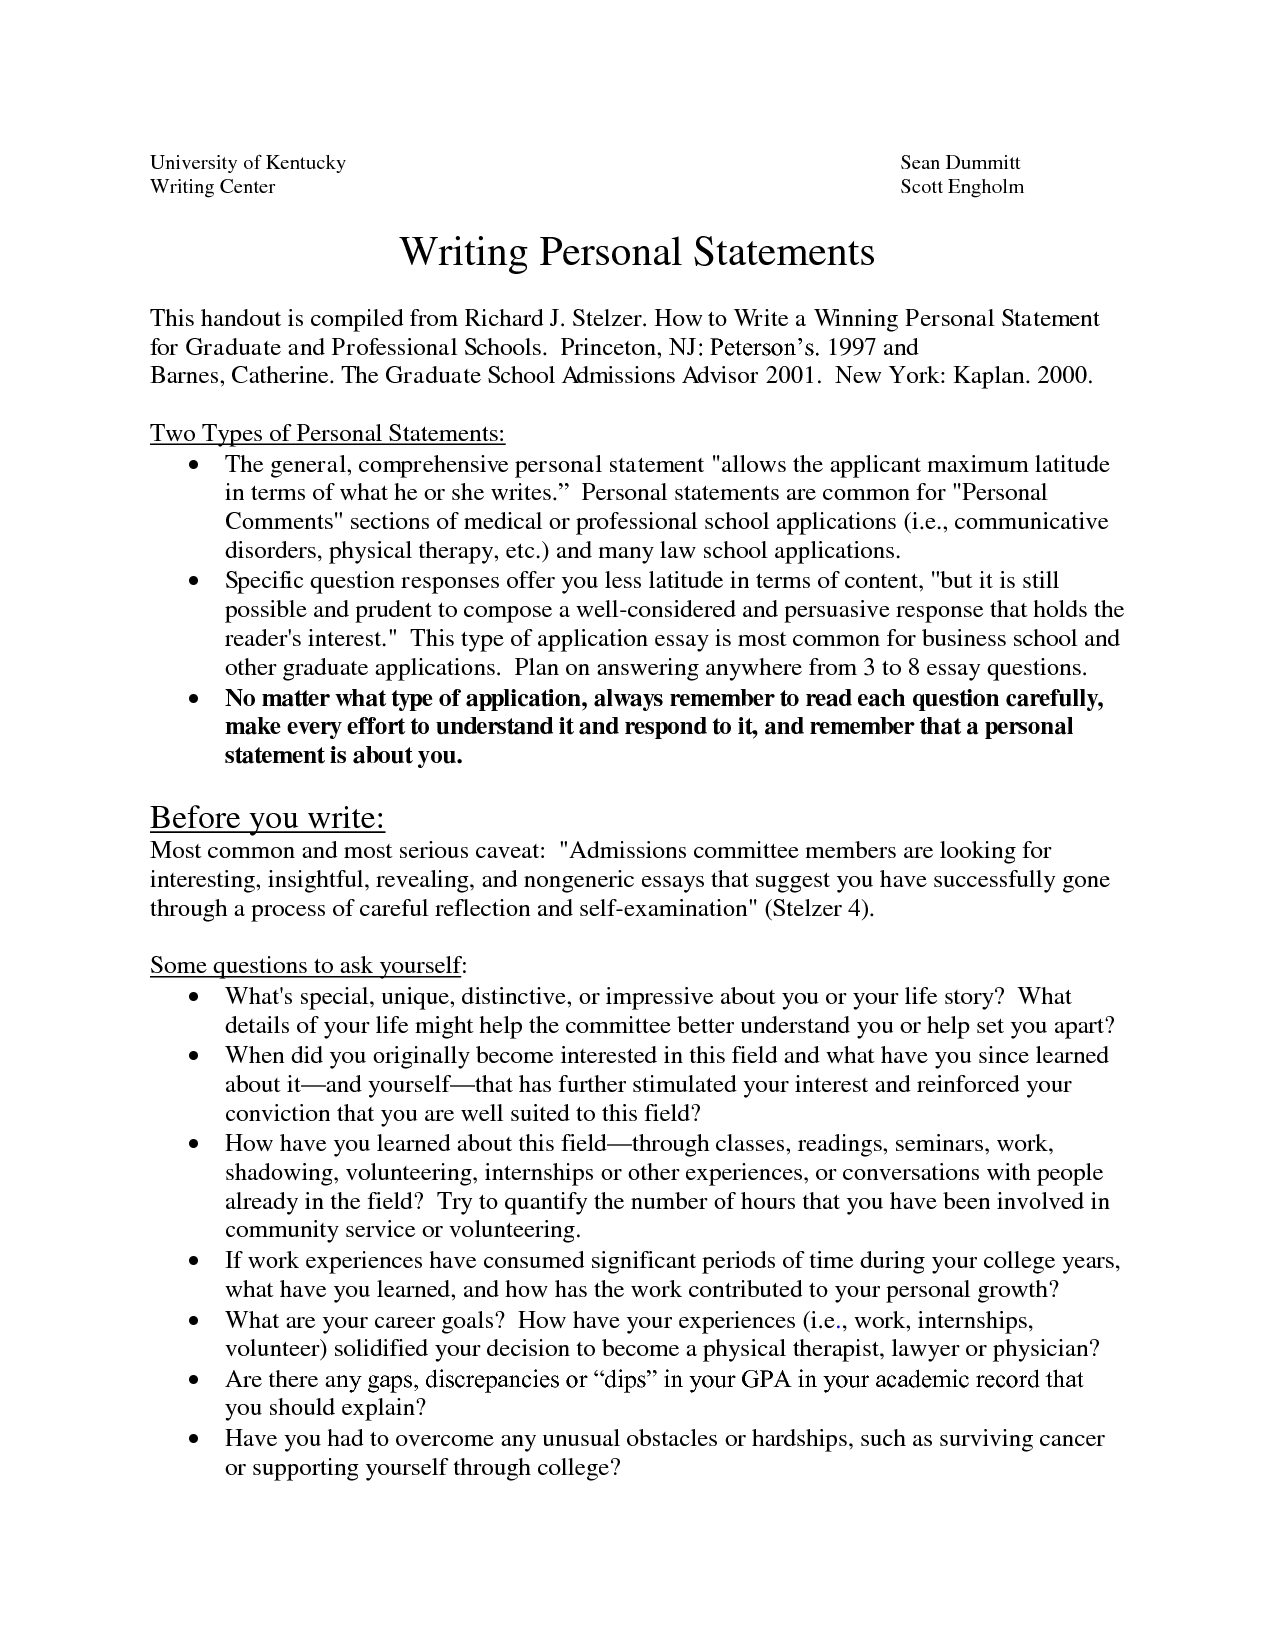 Paid writing help for college application wisconsin personal statement